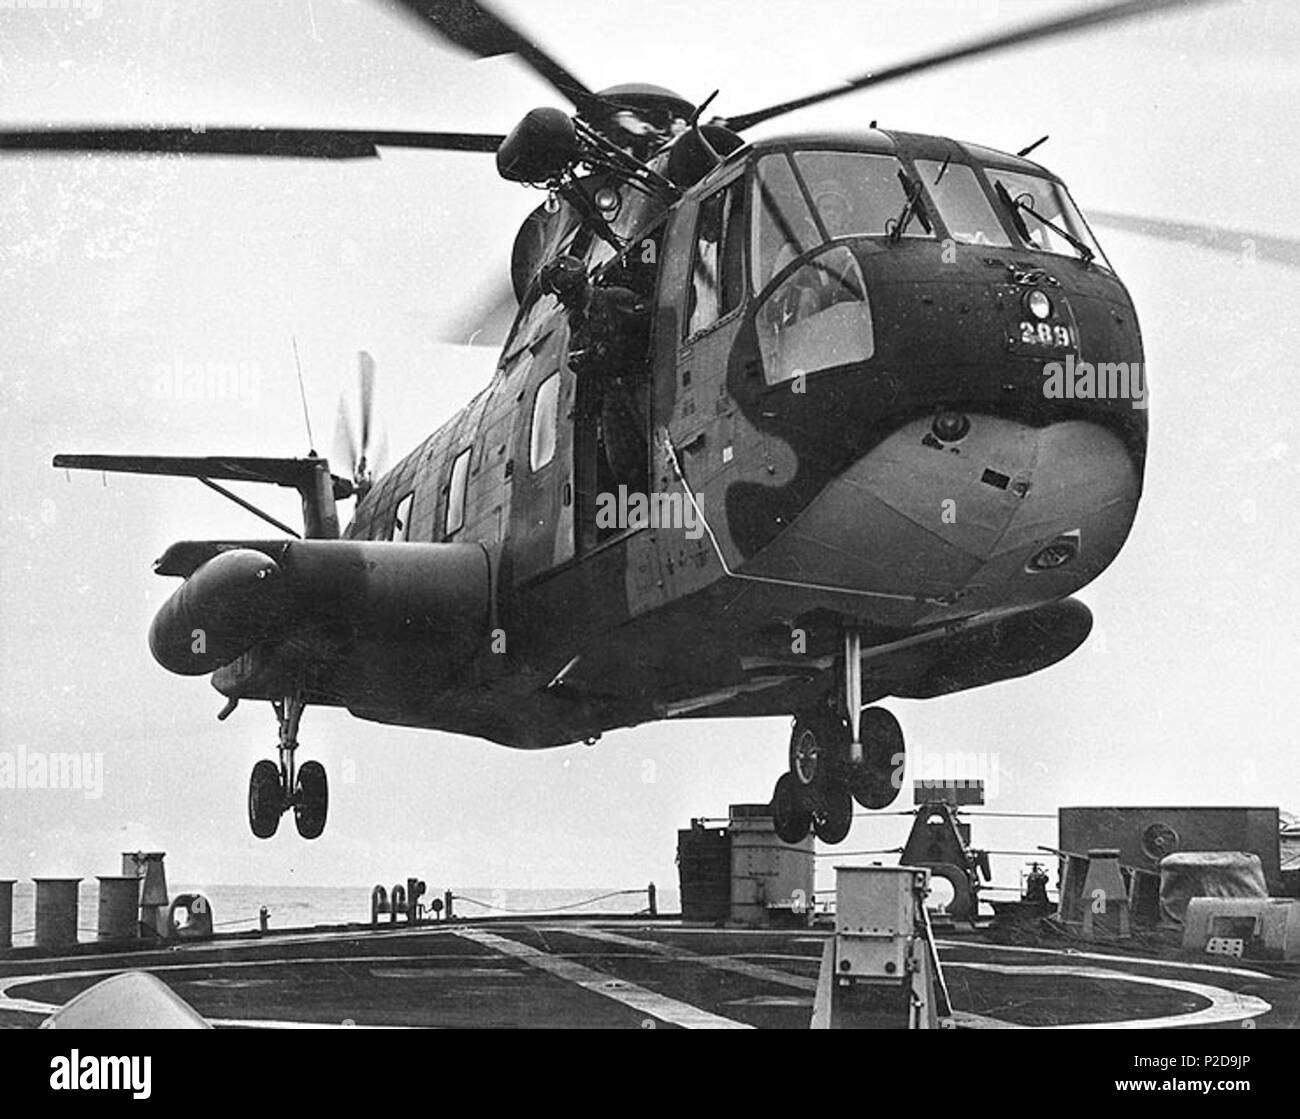 . A U.S. Air Force Sikorsky CH-3E Jolly Green Giant helicopter (s/n 66-13289) hovers over the after deck of the U.S. Navy guided missile destroyer USS William V. Pratt (DLG-13) on either 7 or 18 August 1967, while the ship was on Vietnam War duty in the Gulf of Tonkin. August 1967. USN 12 CH-3E hovers over USS William V. Pratt (DLG-13) off Vietnam in 1967 - Stock Image